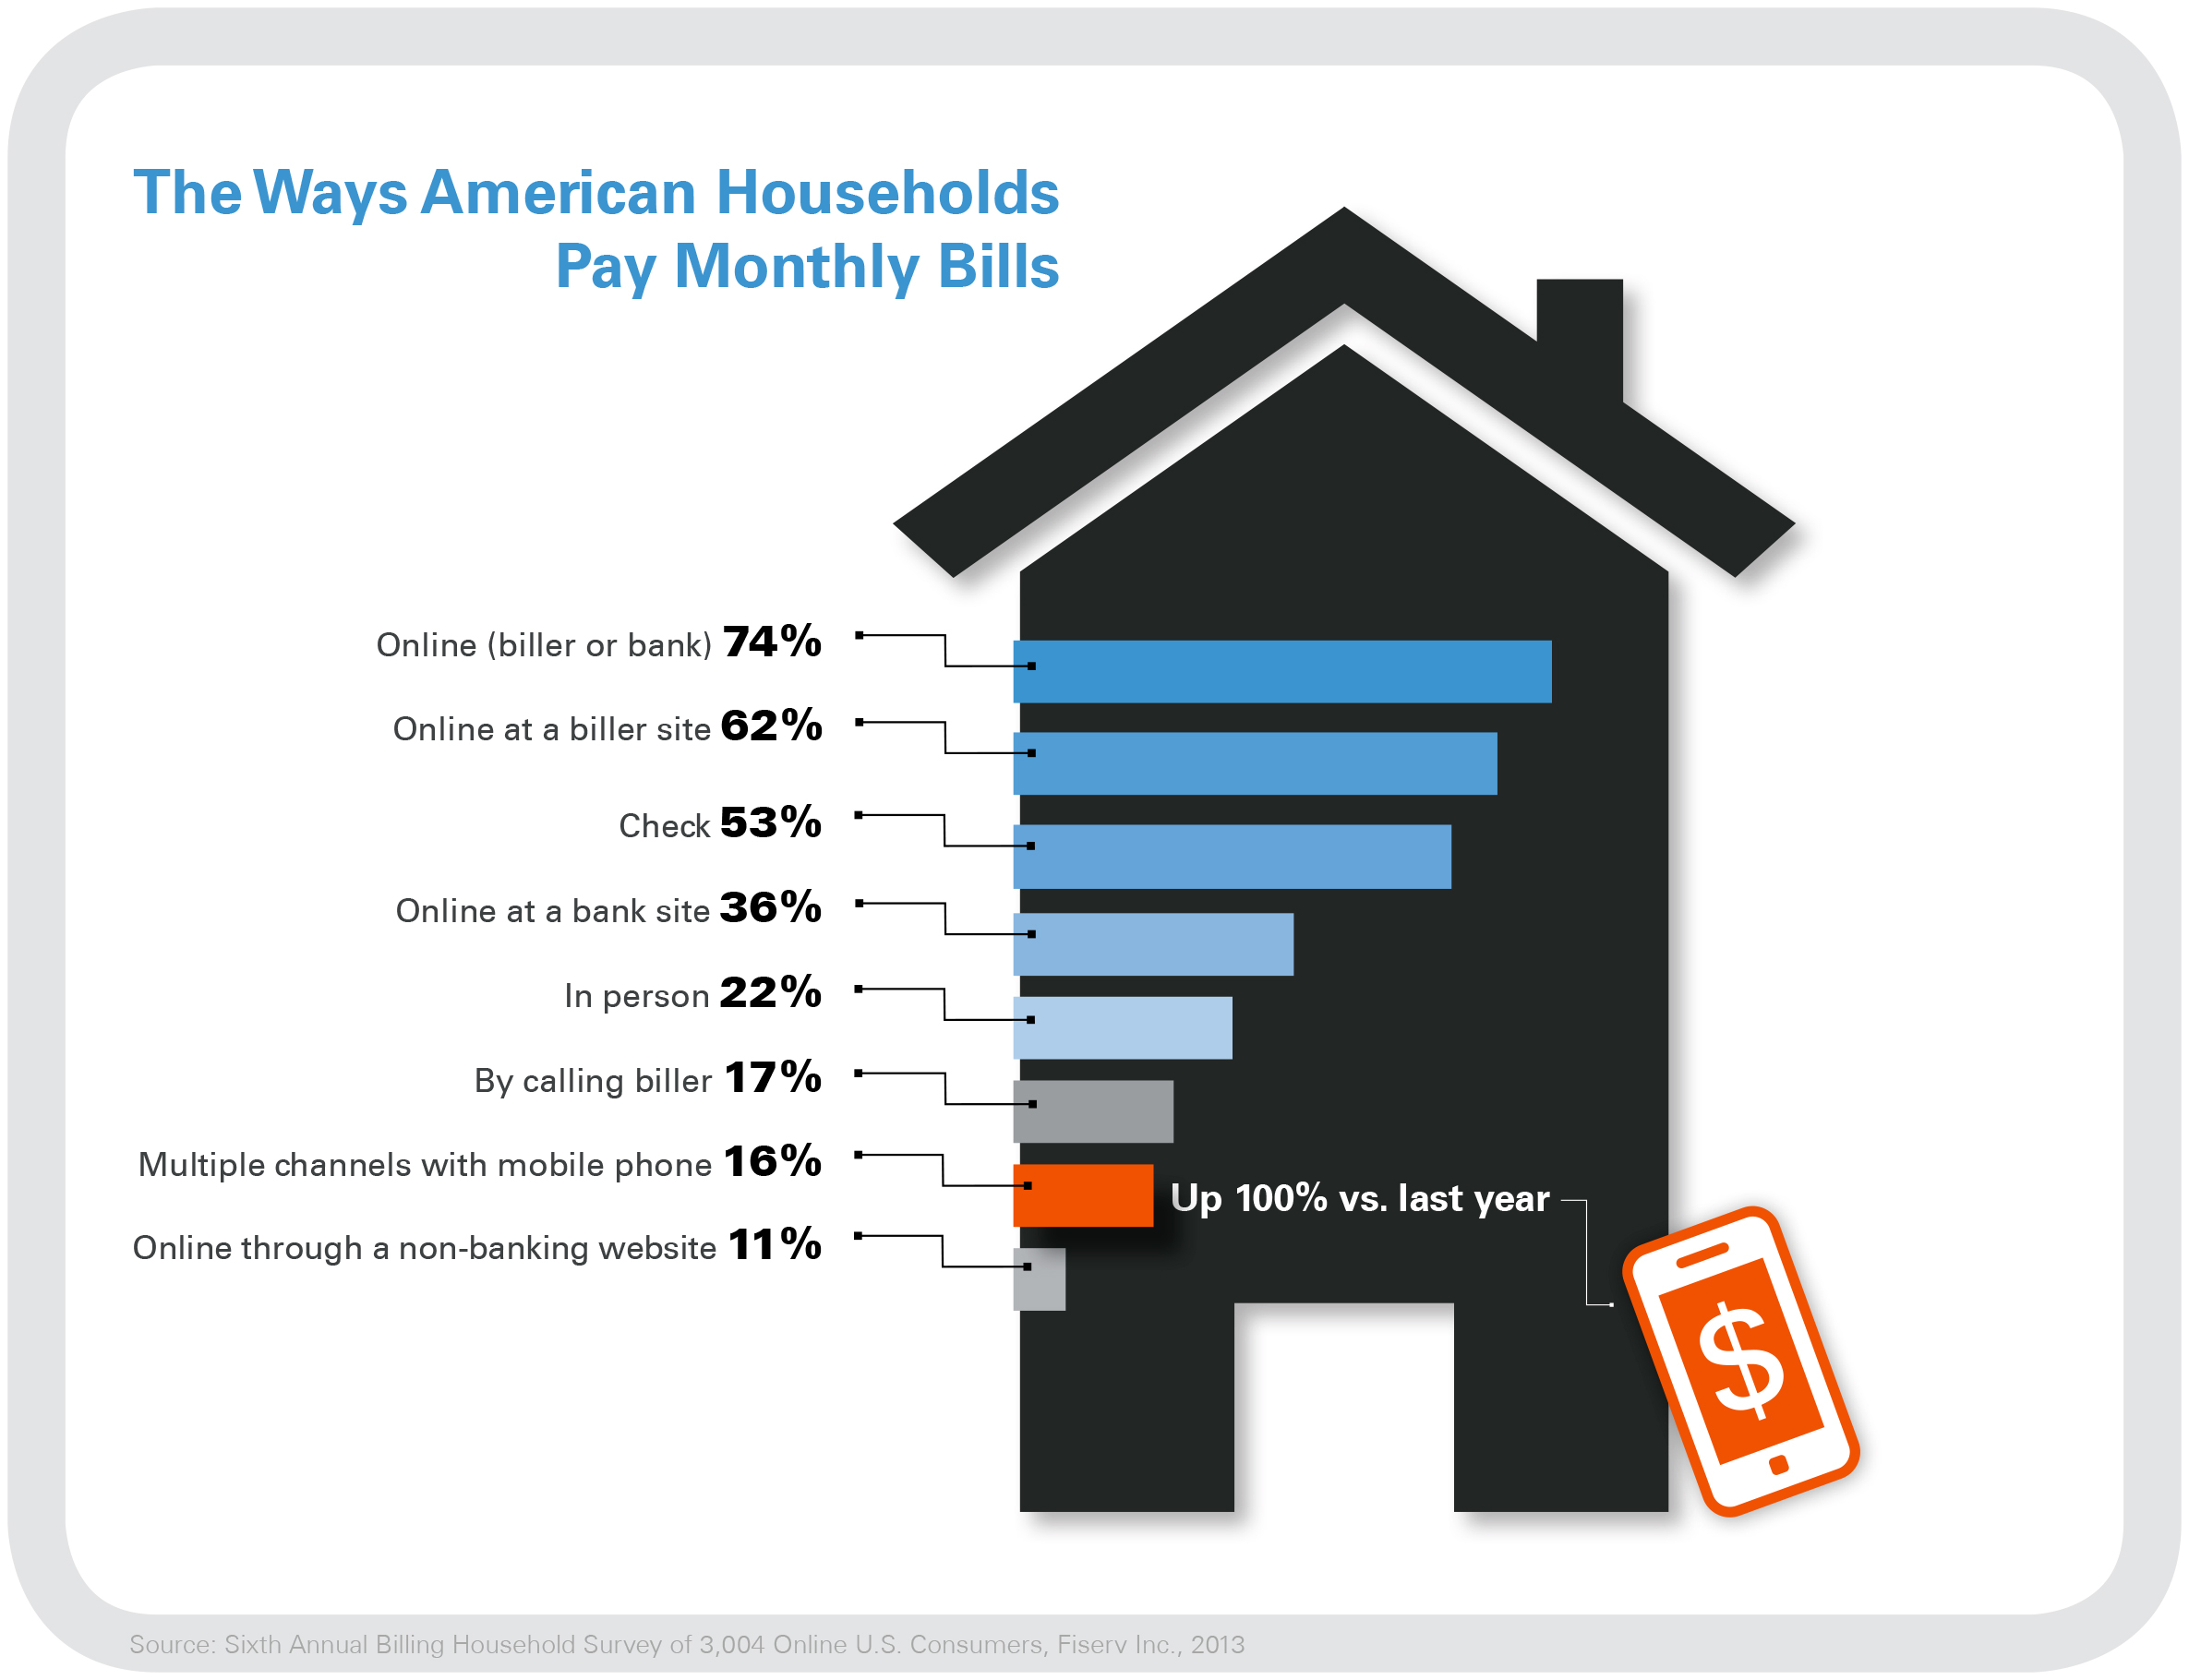 2013 Fiserv Billing Household Survey